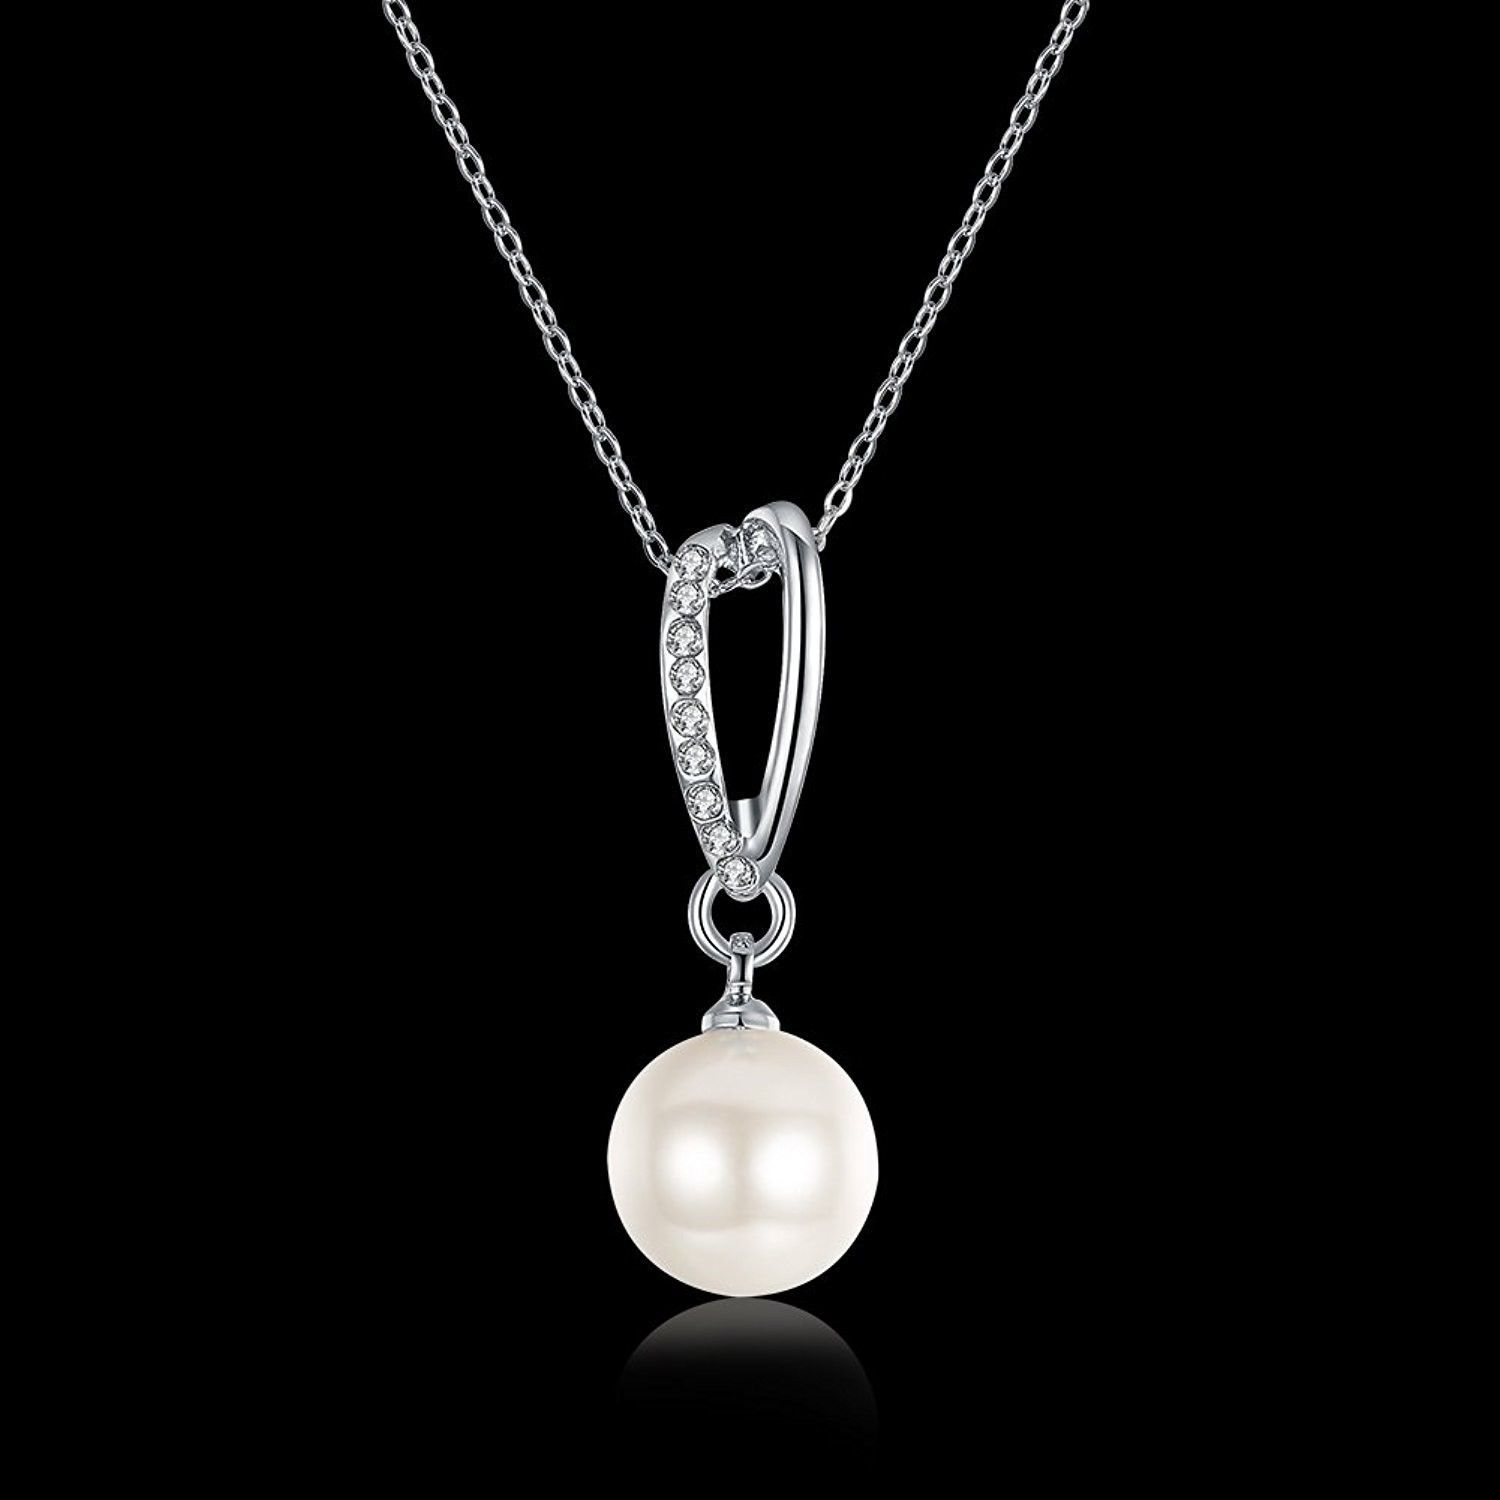 Shally Women's Platinum Plated Pearl Necklace Imitation Pearl And Crystal